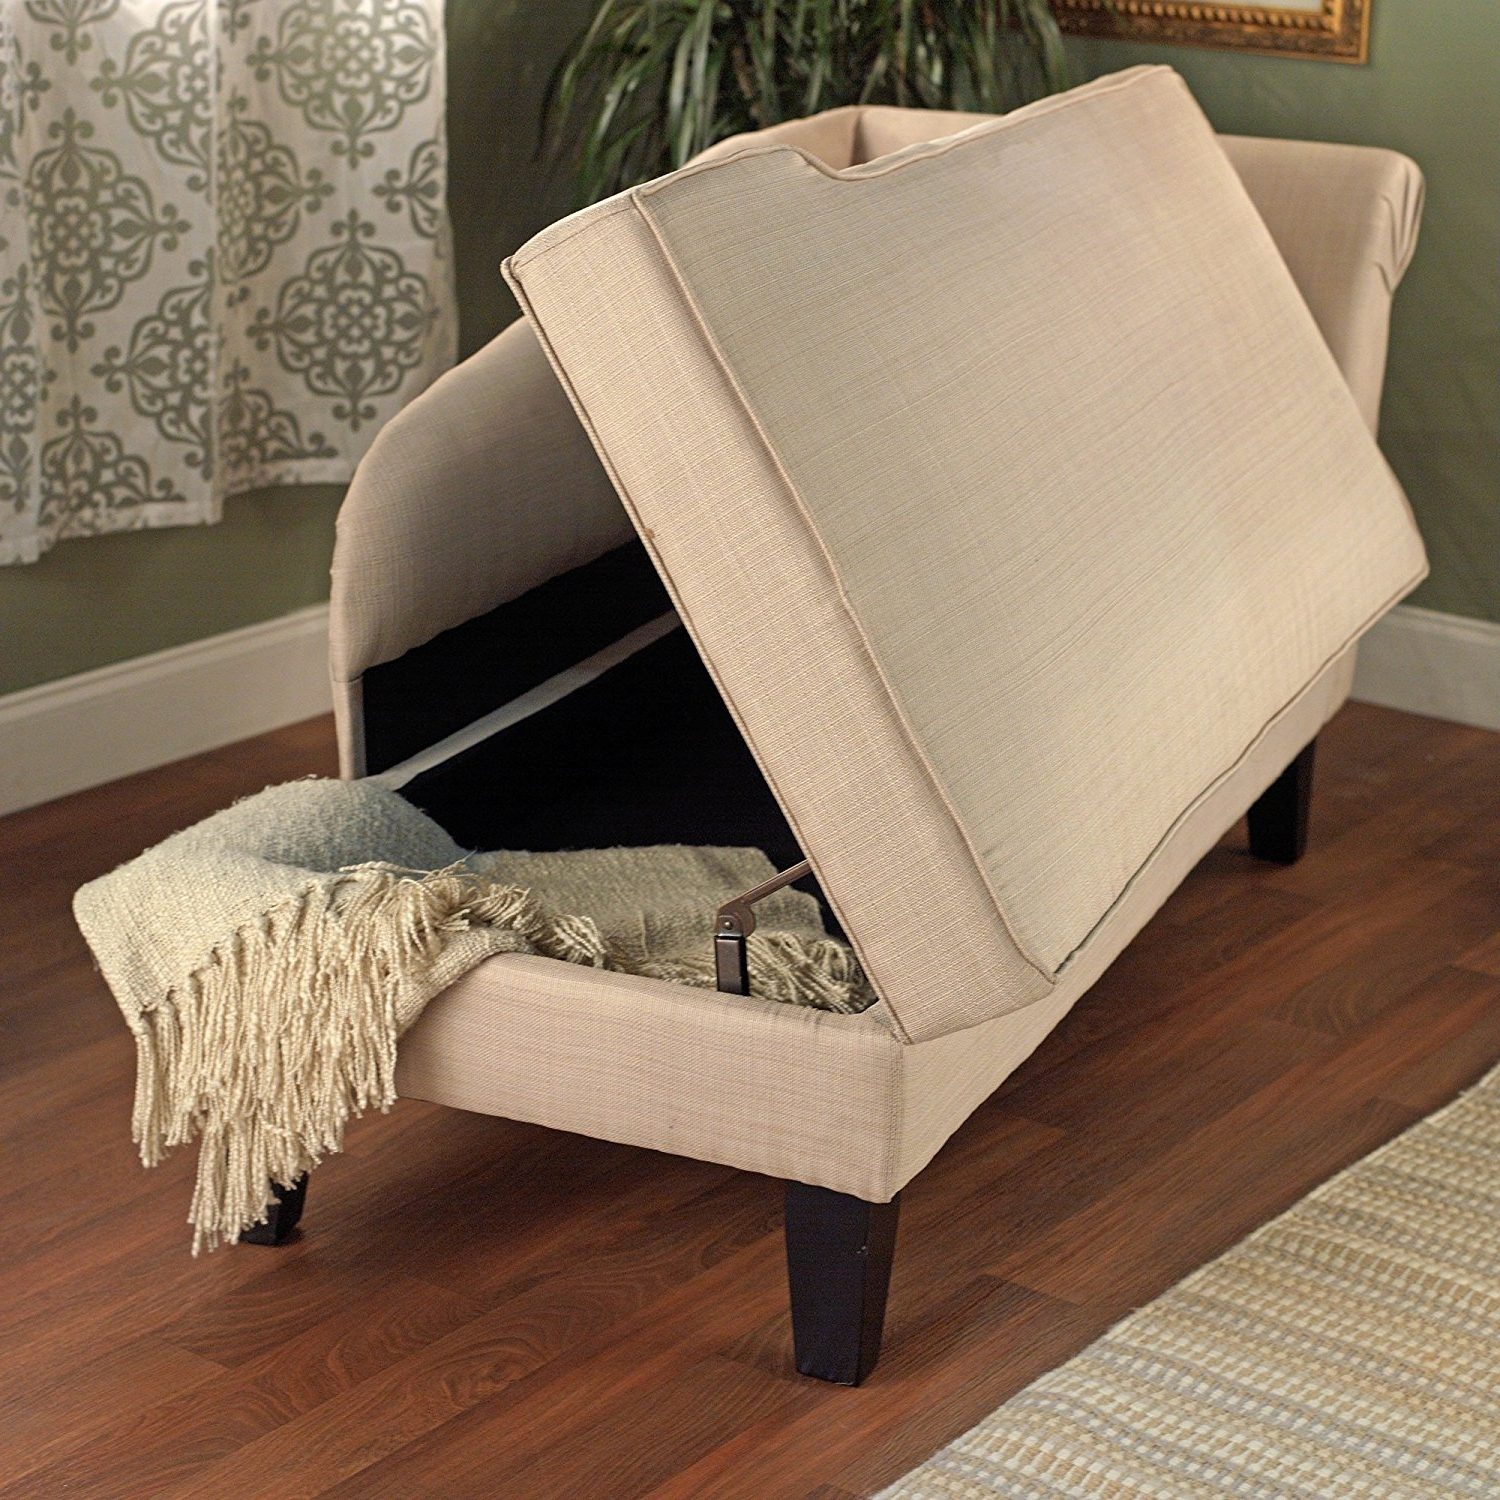 Amazon: Tms Leena Storage Chaise, Beige: Kitchen & Dining Pertaining To 2018 Chaise Lounge Chairs With Storage (View 1 of 15)